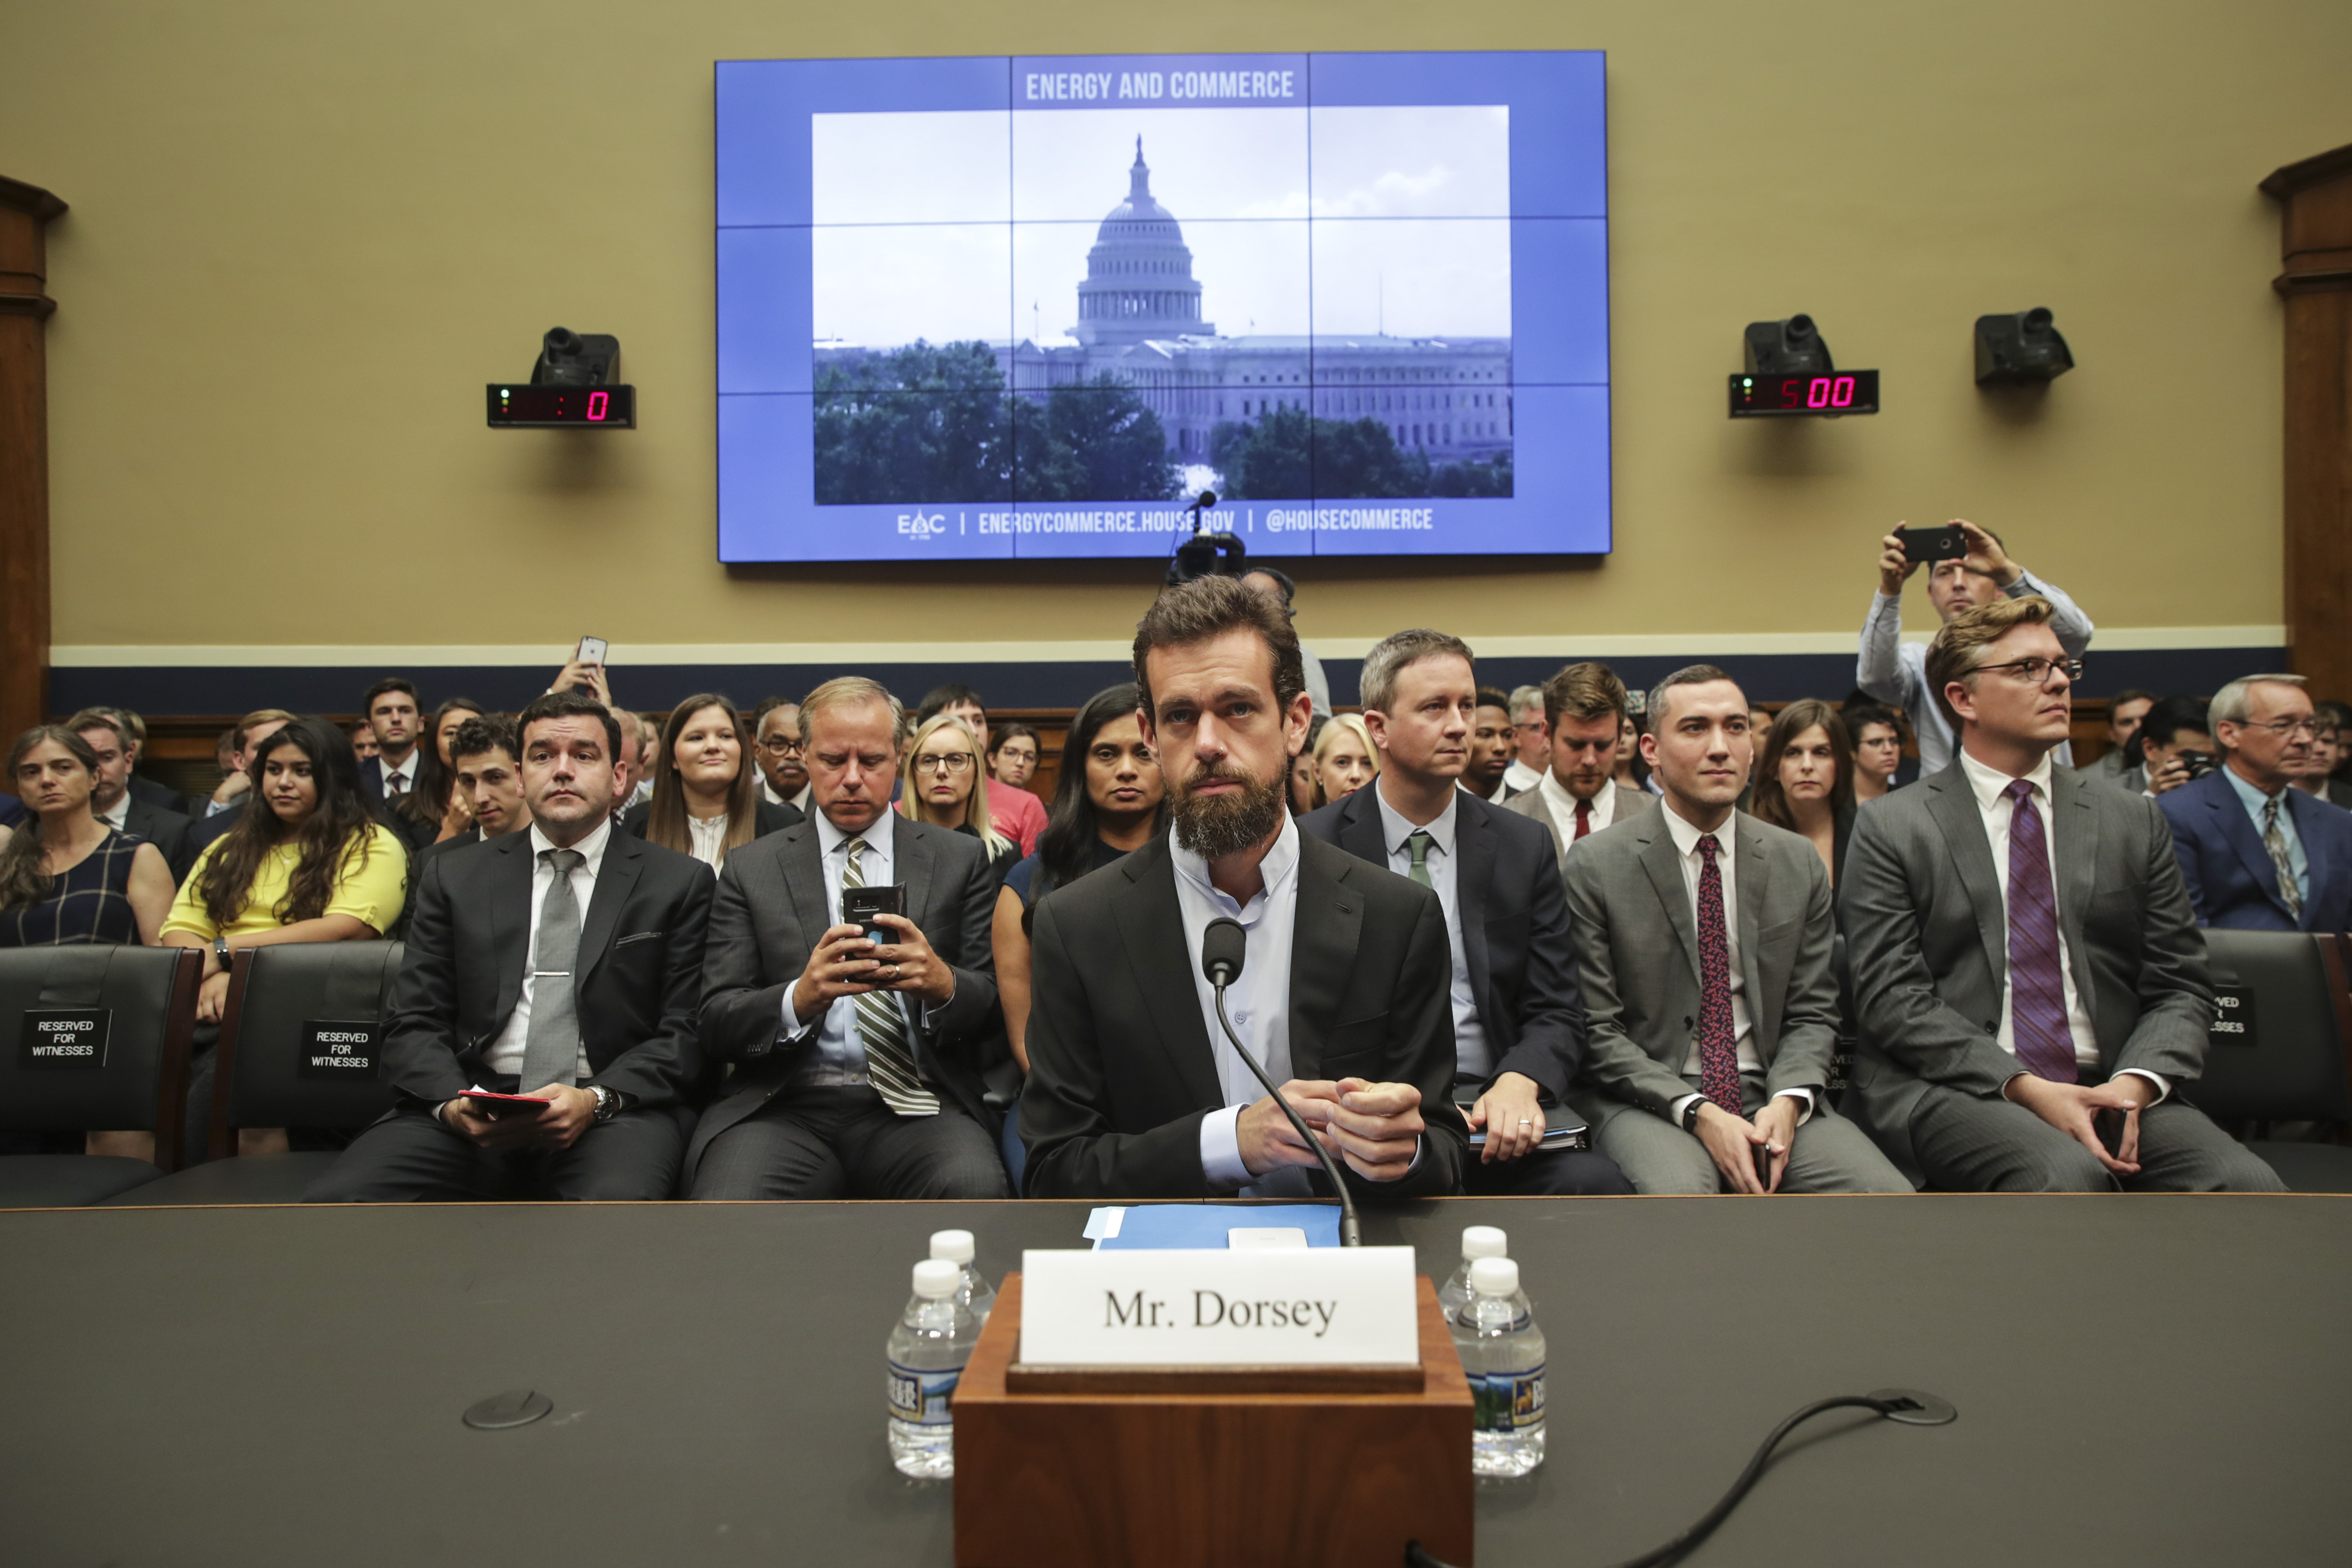 Twitter chief executive officer Jack Dorsey takes his seat as he arrives for a House Committee on Energy and Commerce hearing about Twitter's transparency and accountability, on Capitol Hill, September 5, 2018 in Washington, DC. (Photo by Drew Angerer/Getty Images)